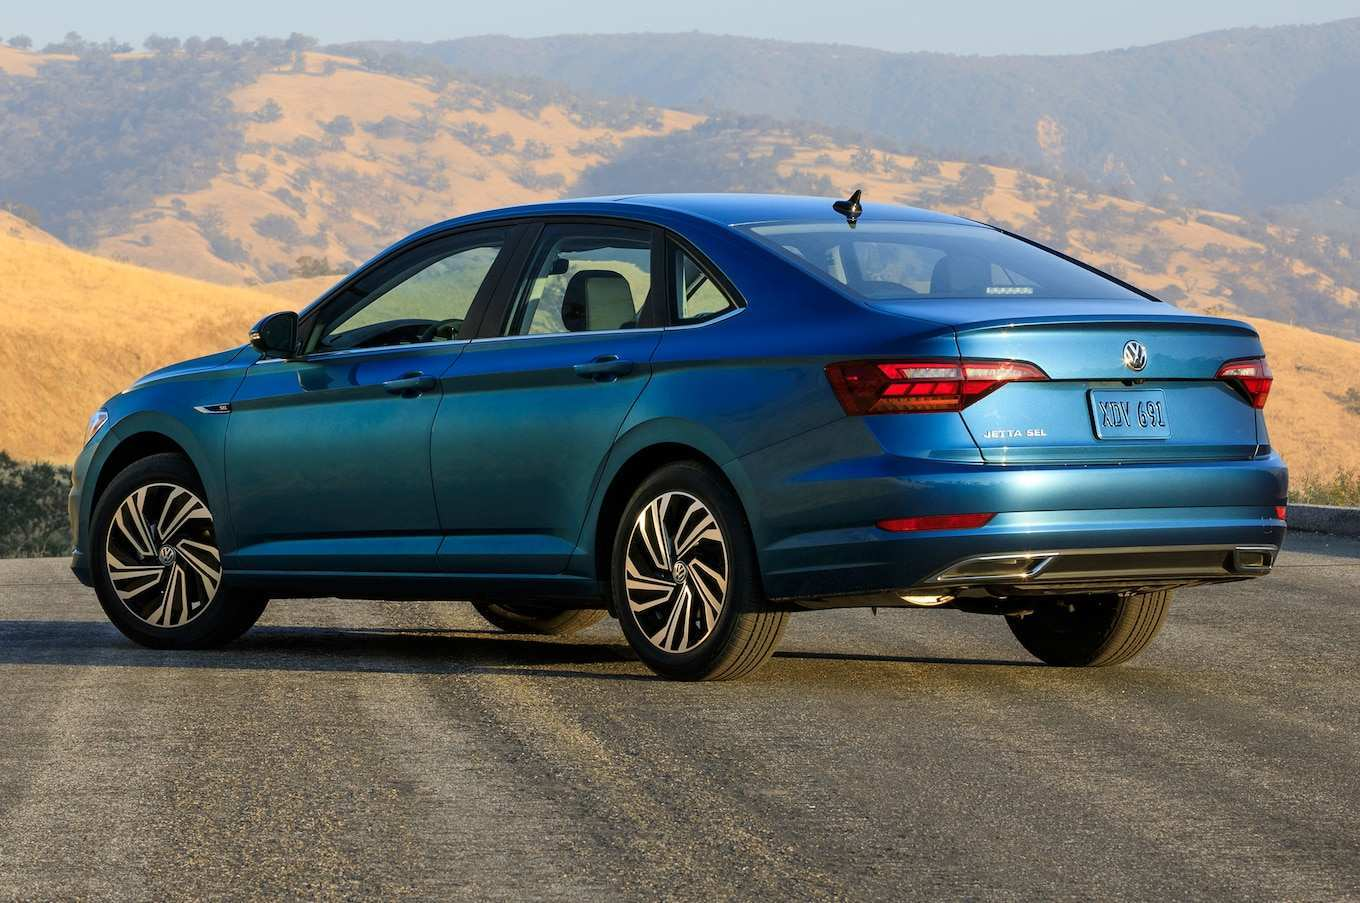 97 Gallery of Volkswagen Jetta 2019 India Redesign and Concept with Volkswagen Jetta 2019 India